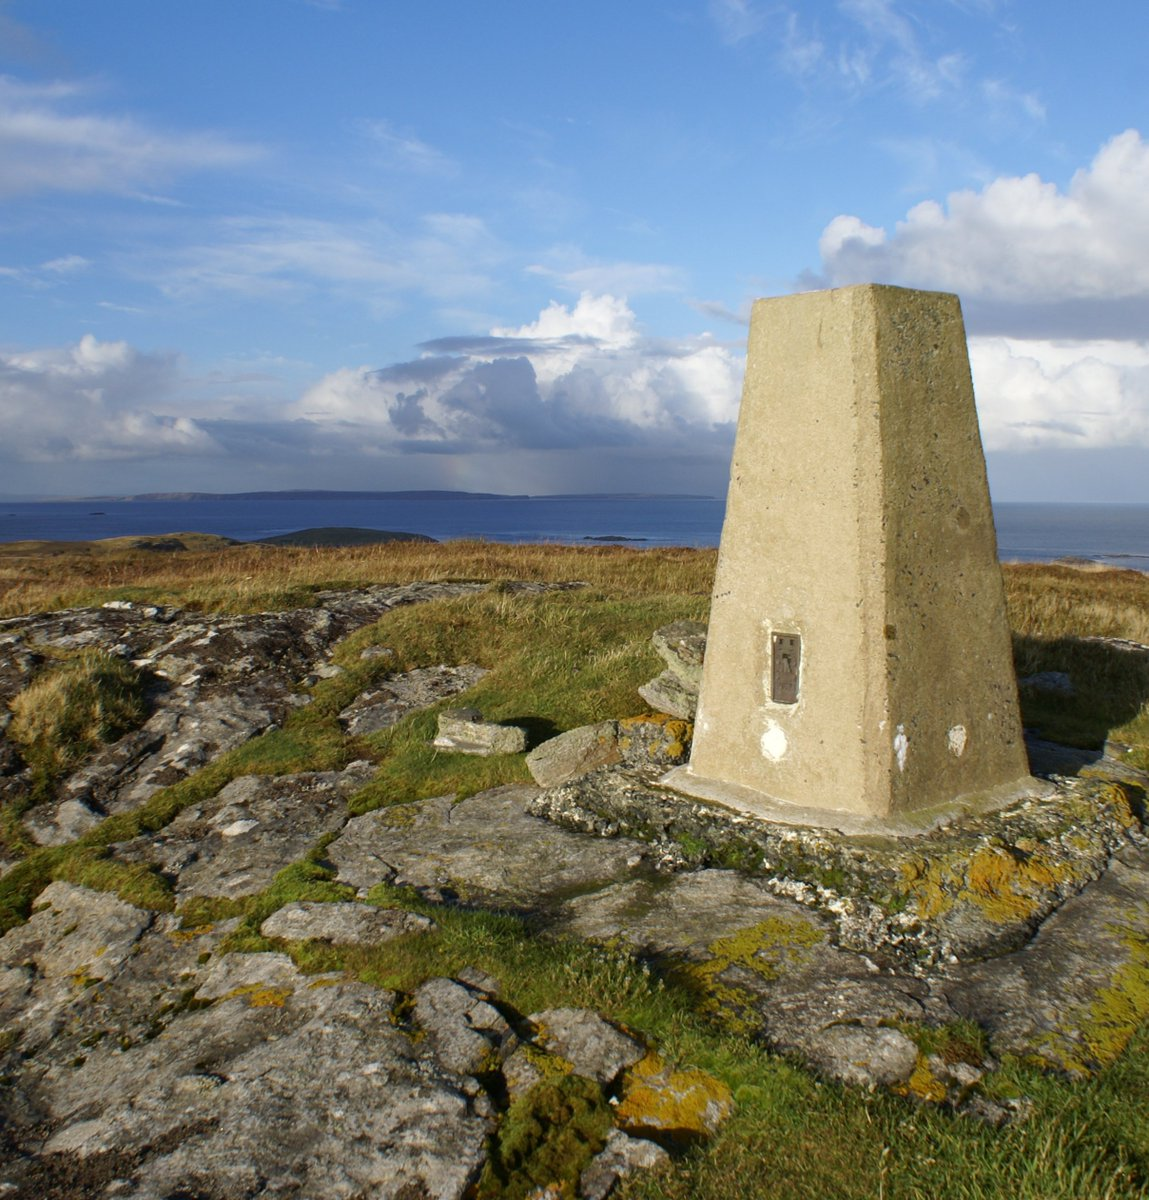 We celebrate #trigpillar80 in the latest #WalkMagazine – what's your favourite trig? https://t.co/bg1Bj7EQDk